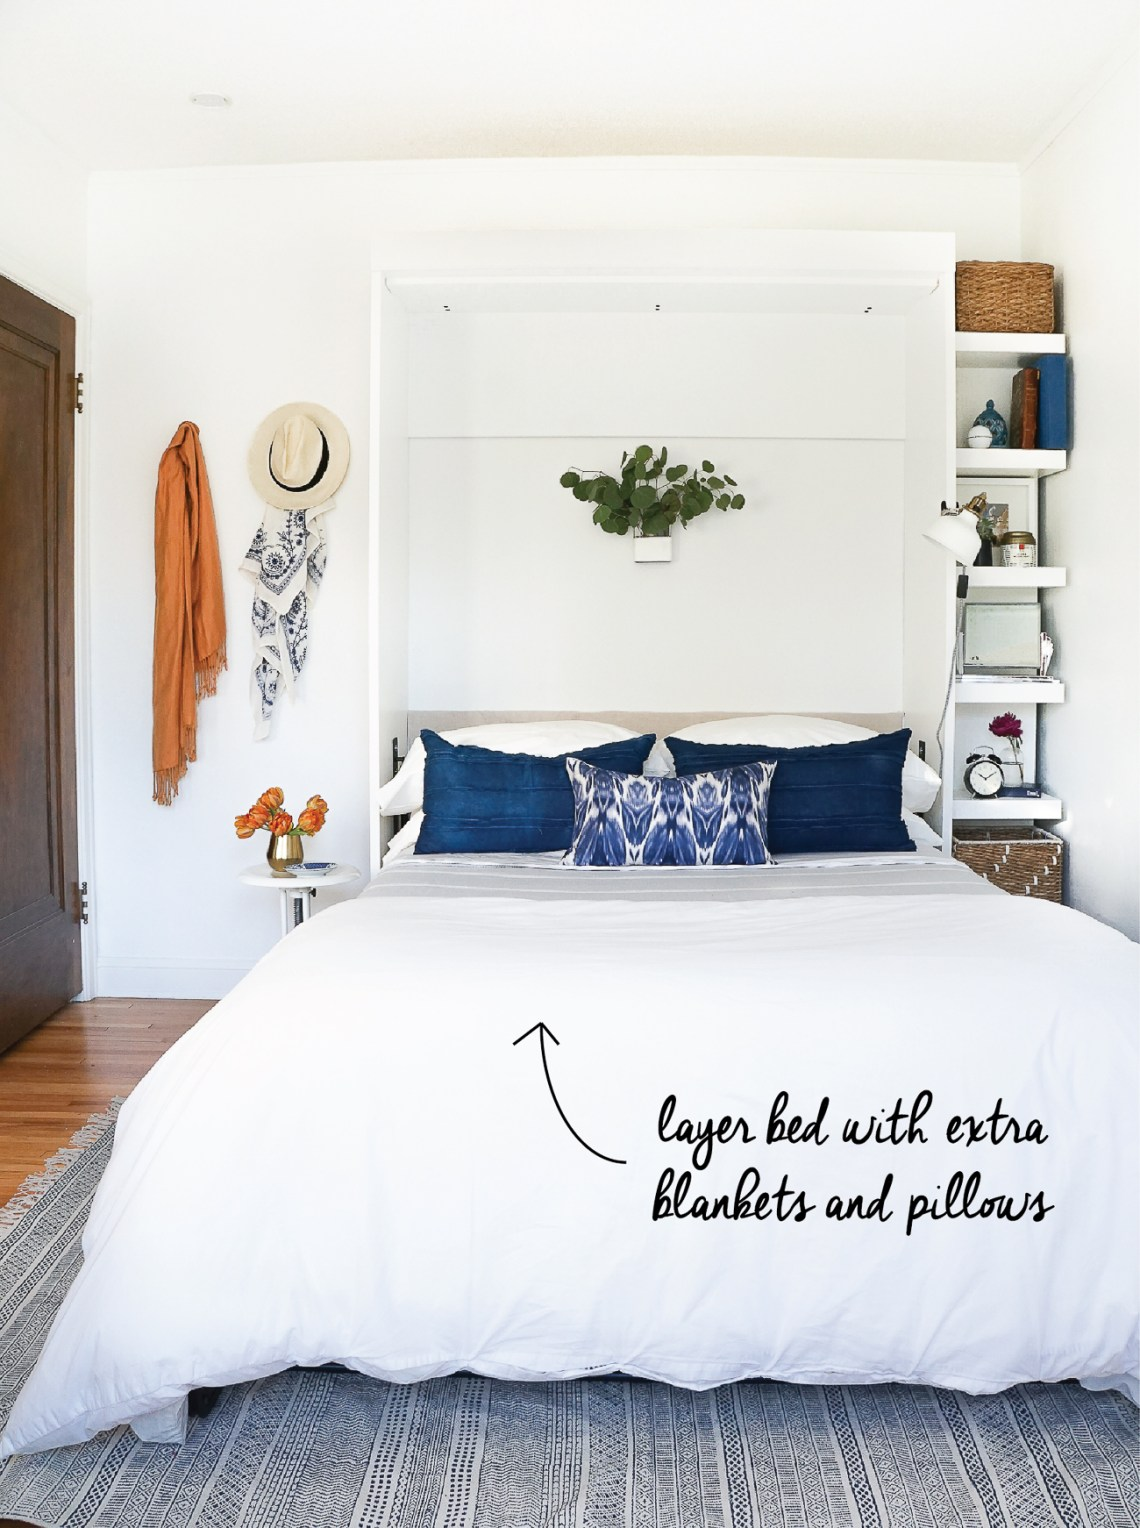 If you're expecting company, you'll want to check out our tips to prepare your guest room. Click for the full run-down!